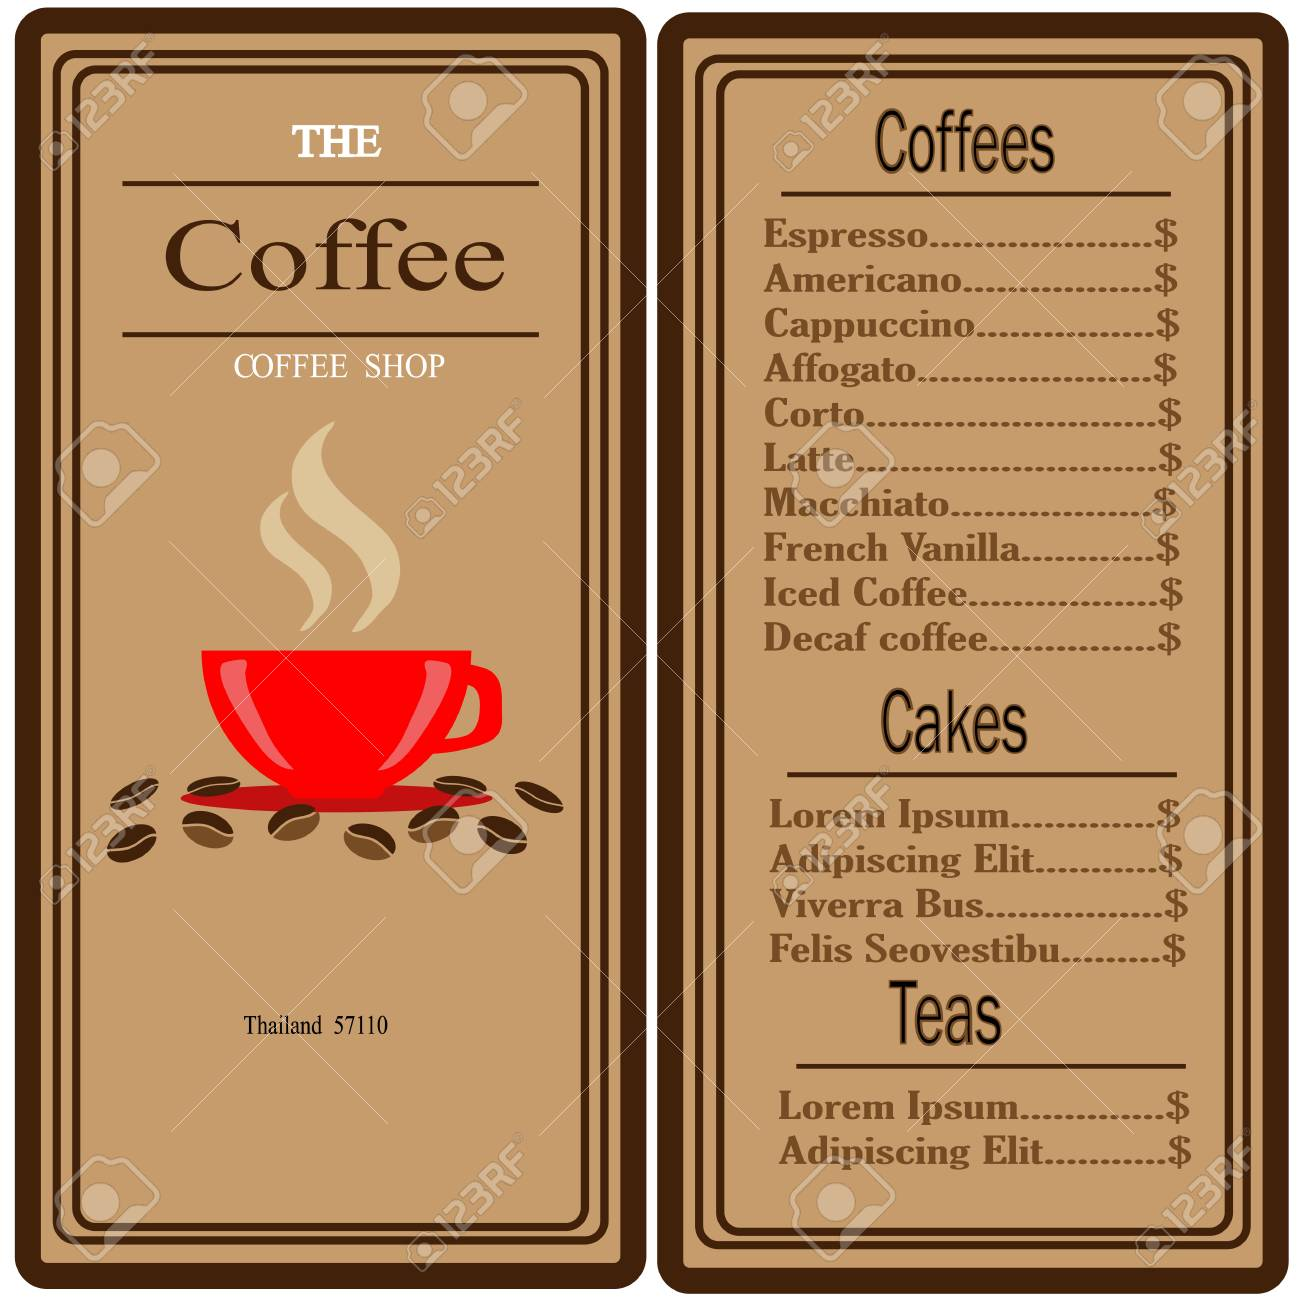 Coffee shop inventory includes perishables such as coffee, sweeteners and flavorings and serving items like cups, lids and sleeves. Coffee Shop Logo And Menu Design Vector Brochure Template Coffee Cup Silhouette Royalty Free Cliparts Vectors And Stock Illustration Image 104220536